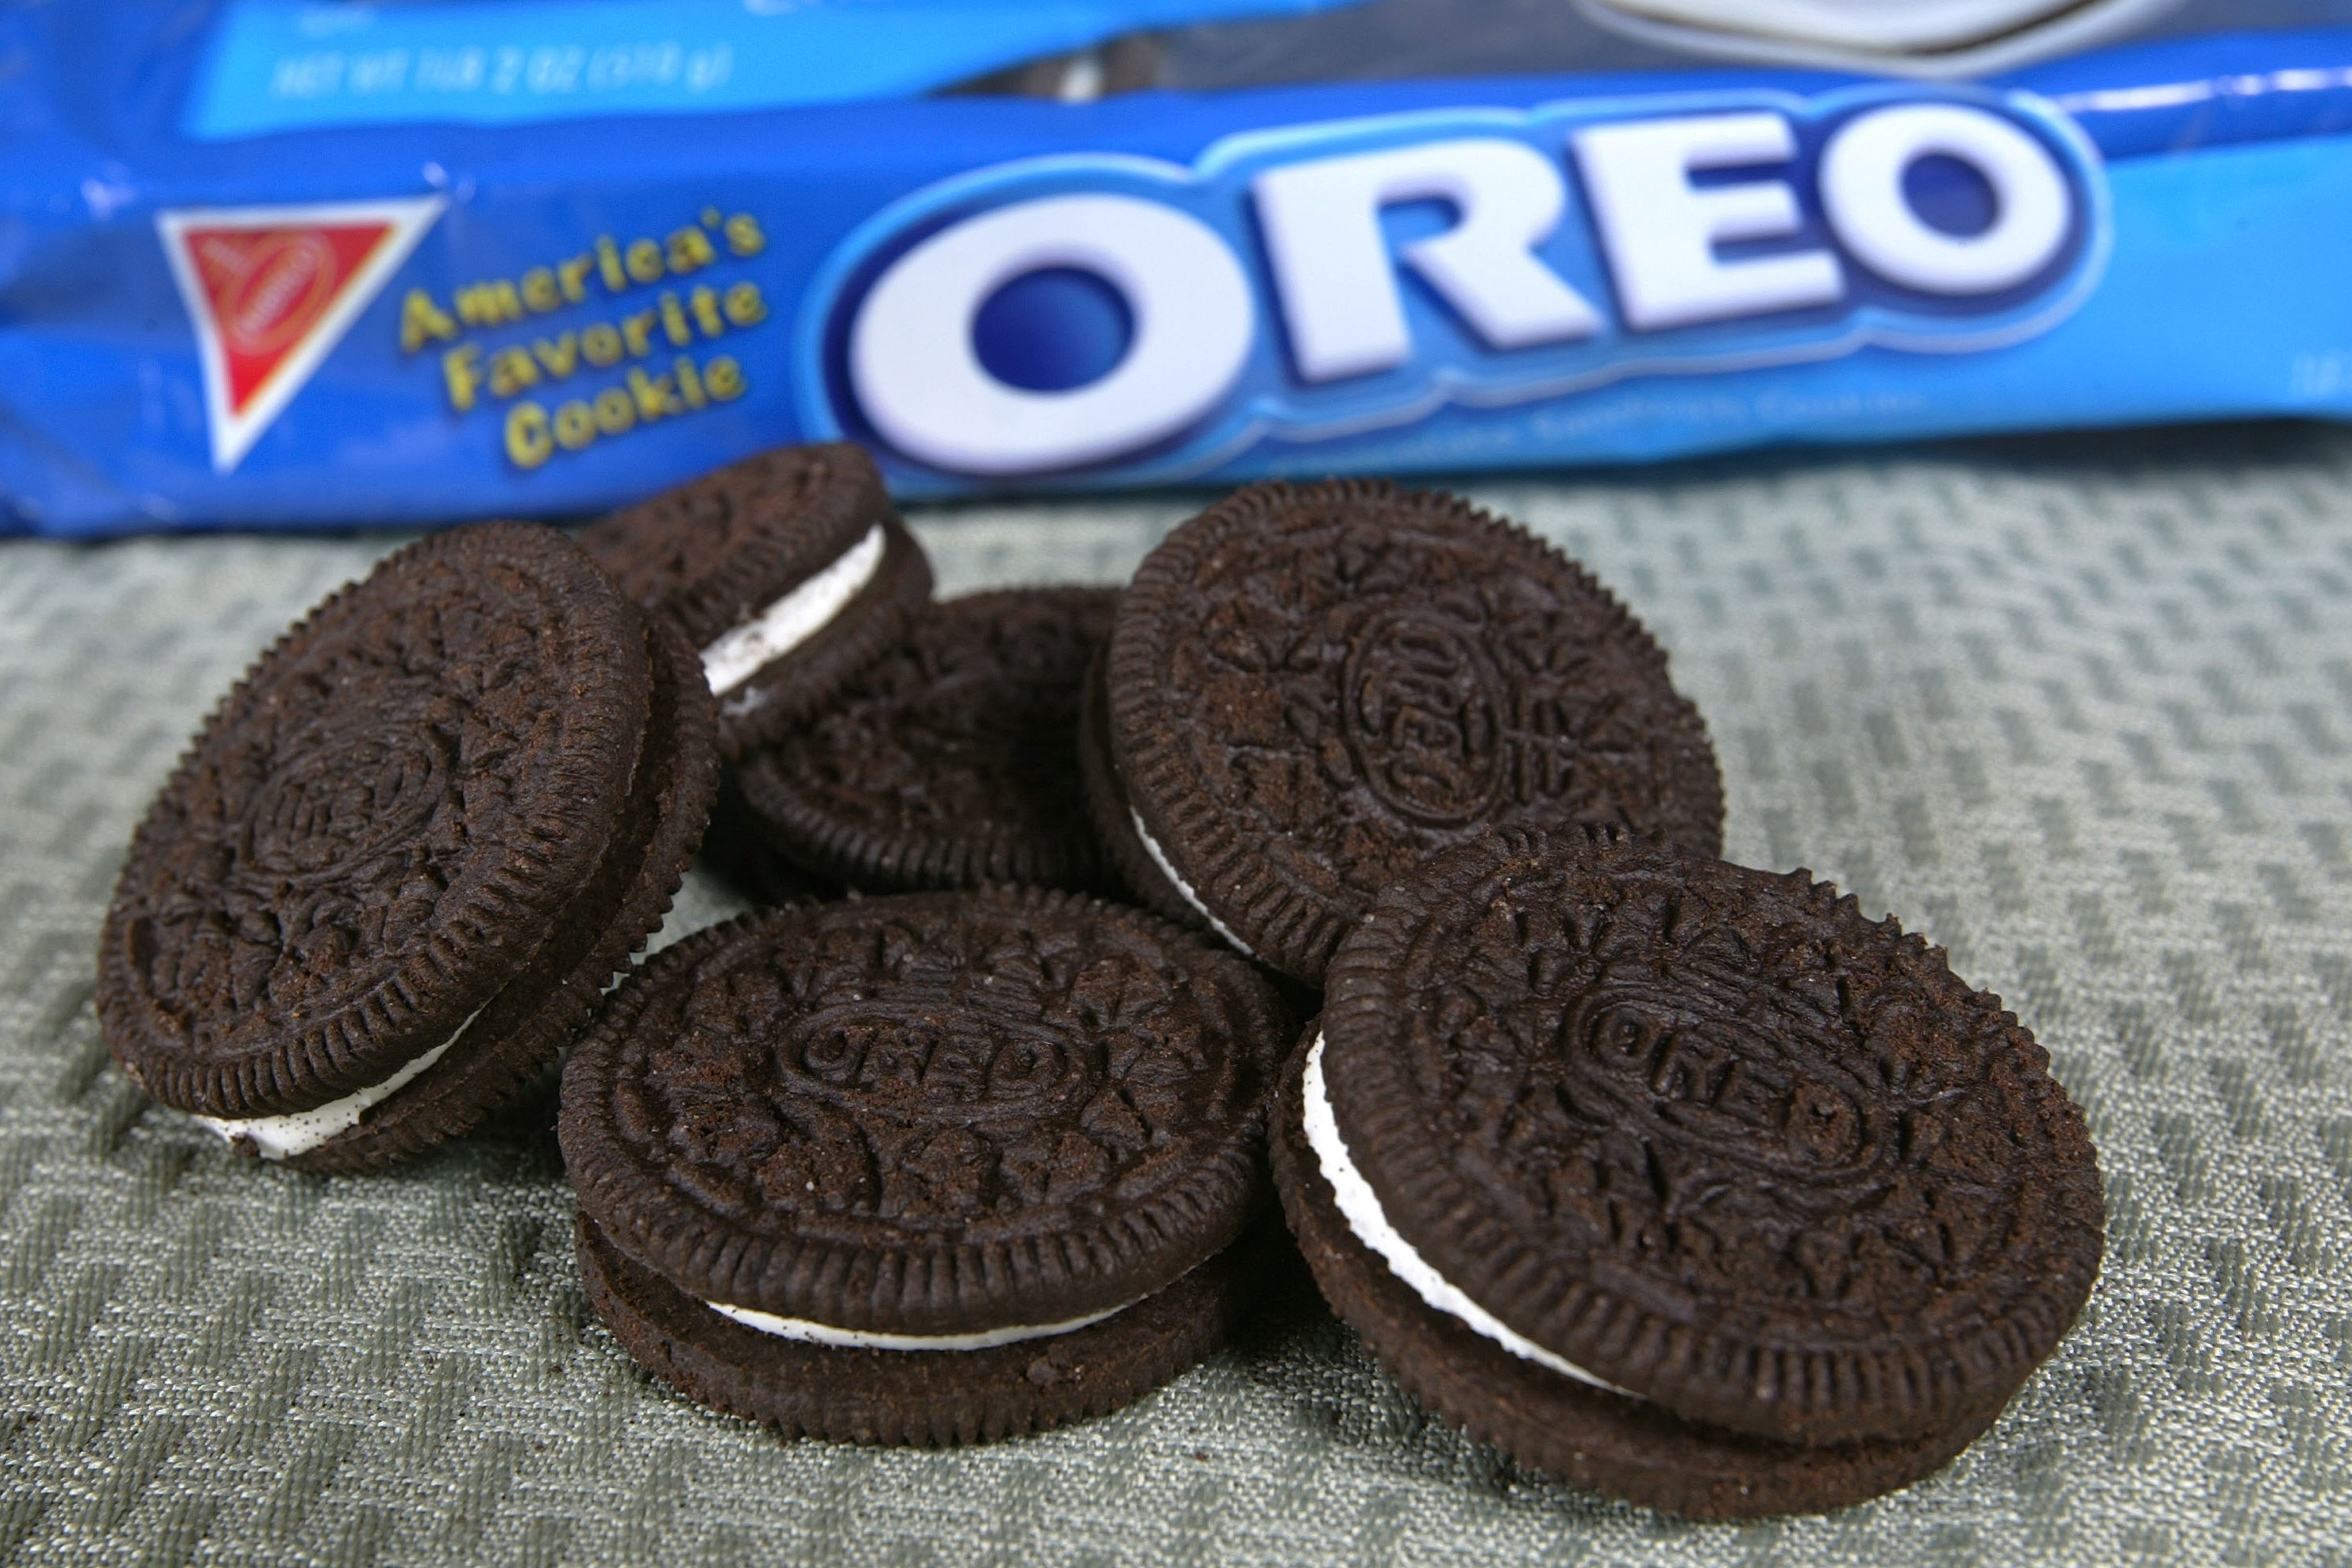 How to Get a Free Candy Bar on National Oreo Day